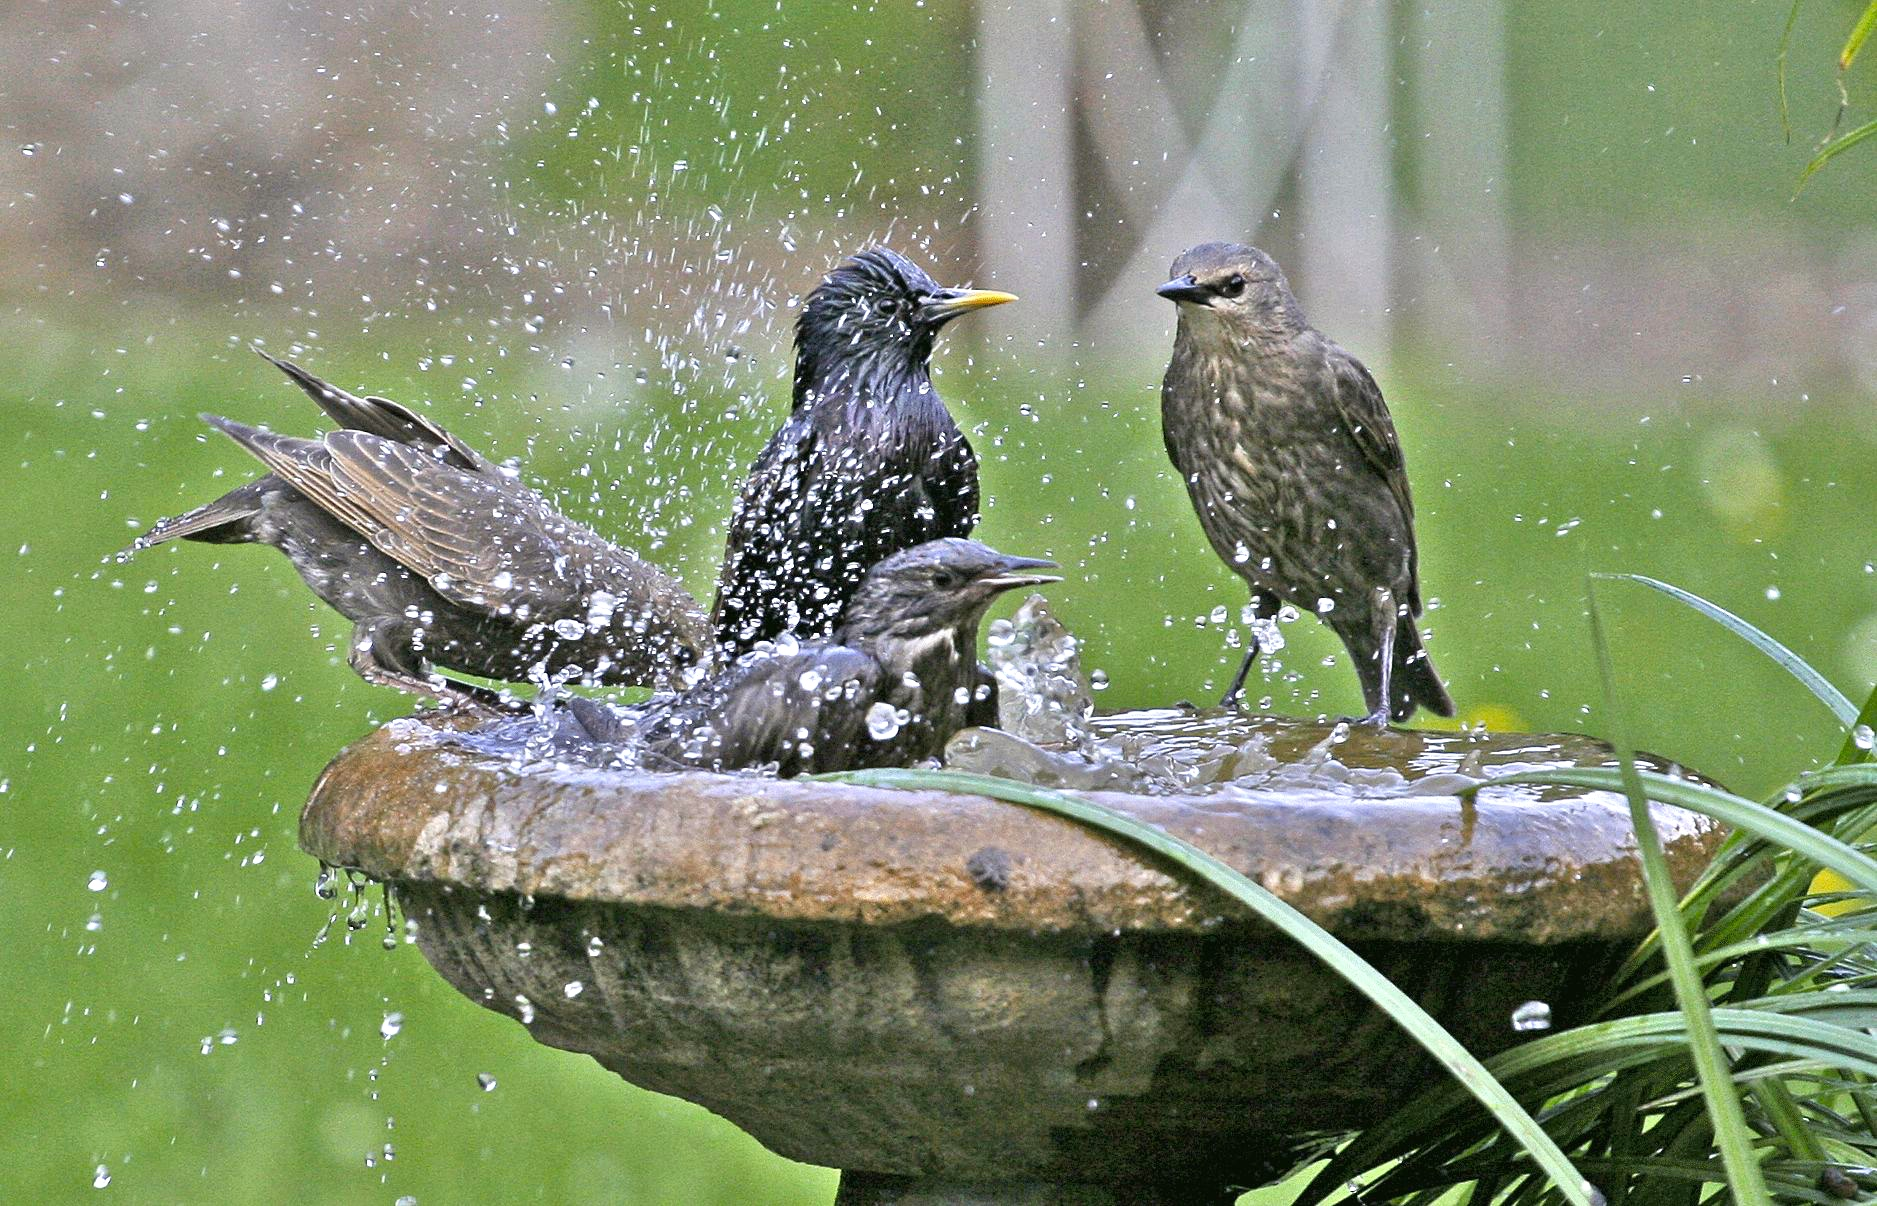 Make Water Move To Delight Birds